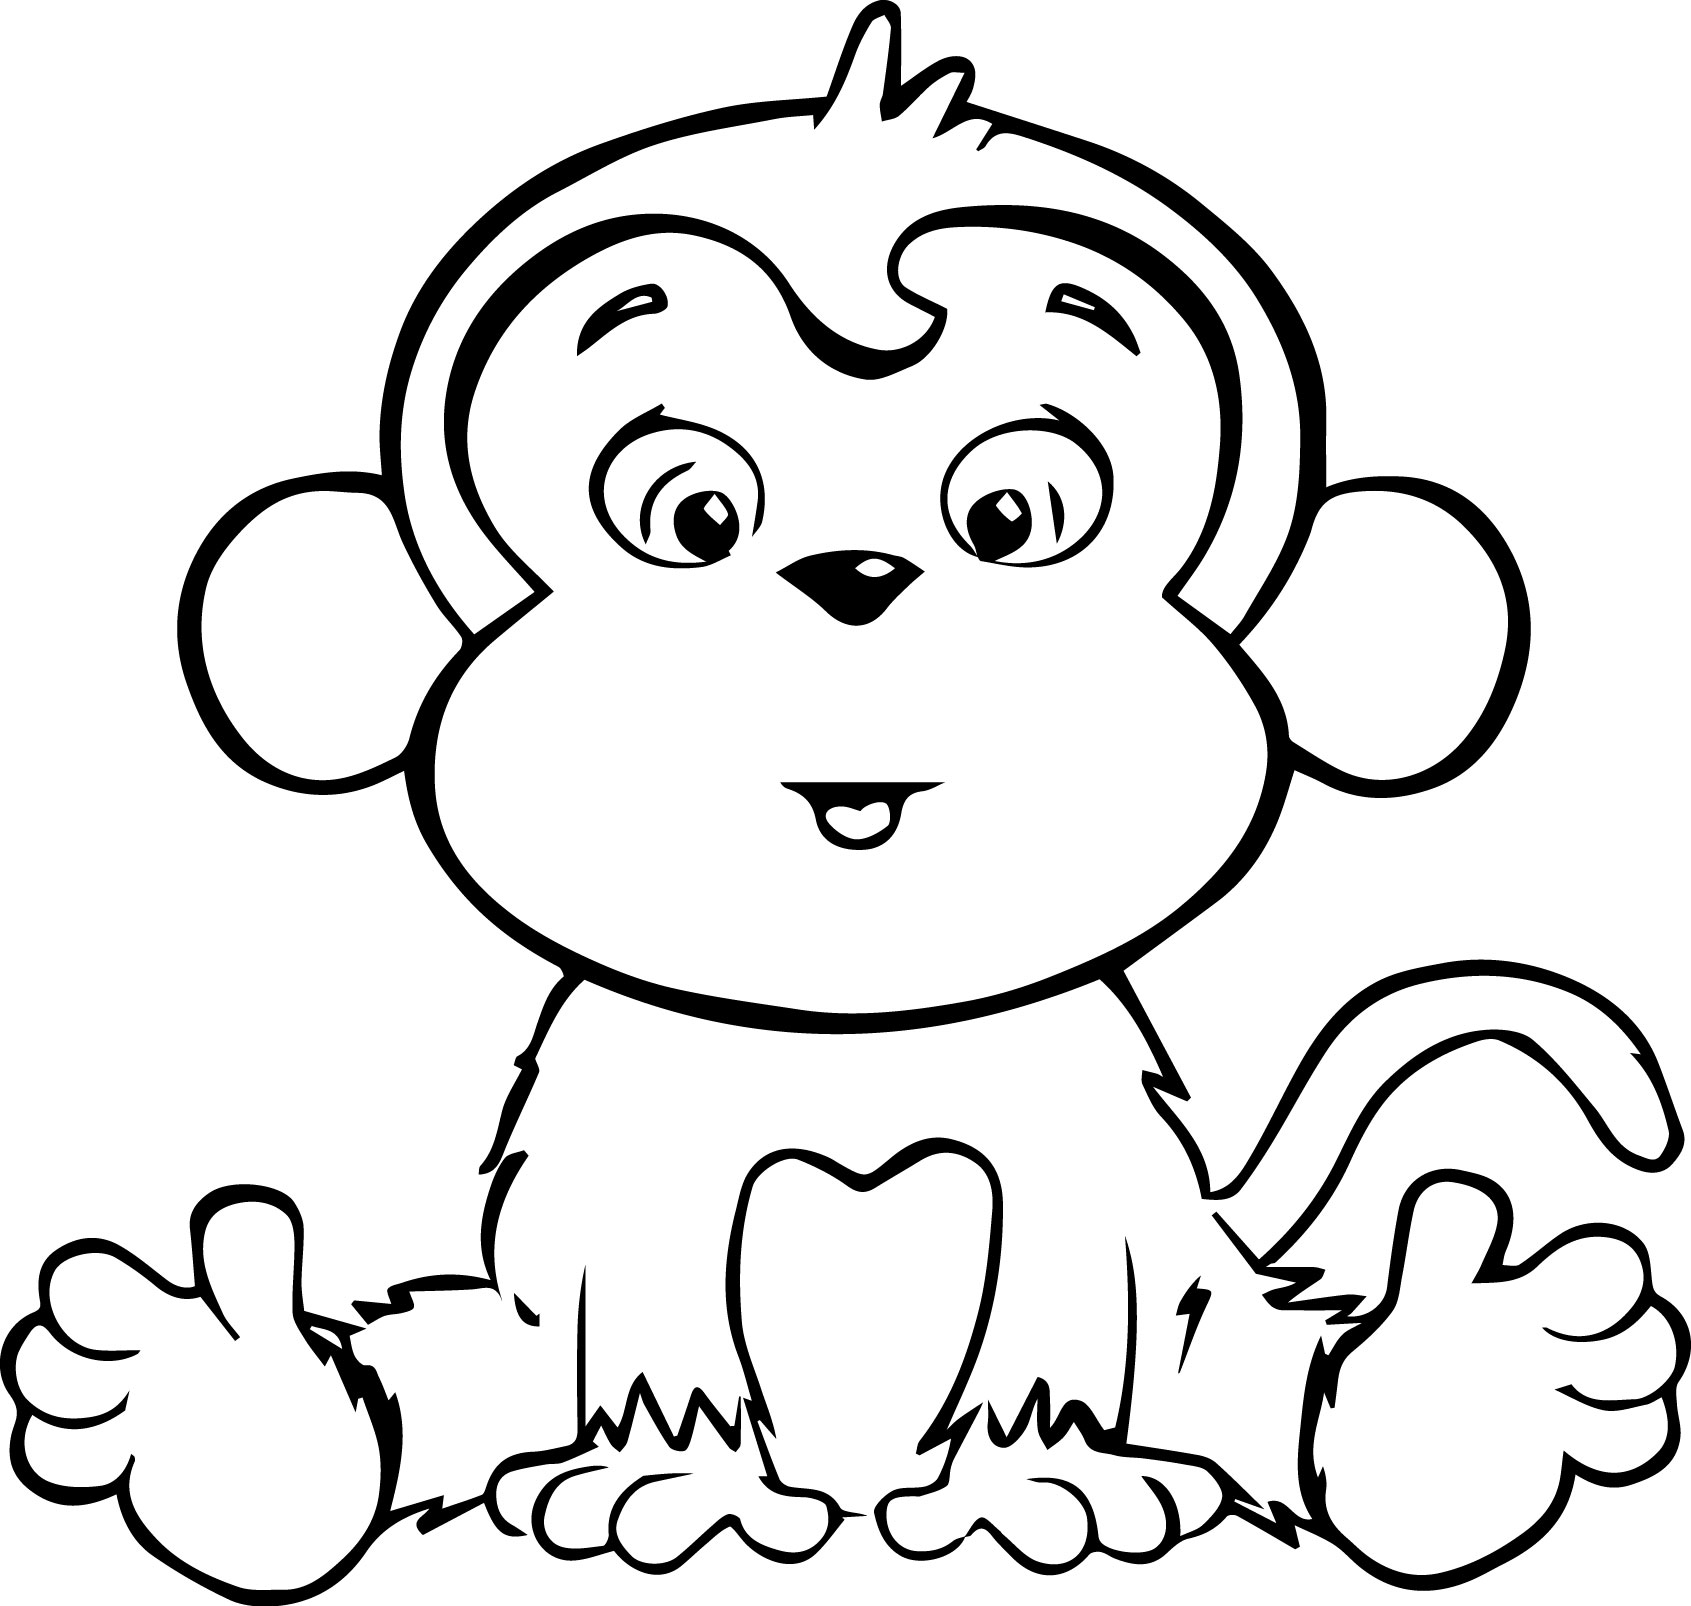 1691x1606 Value Cartoon Character Colouring Pages Colori